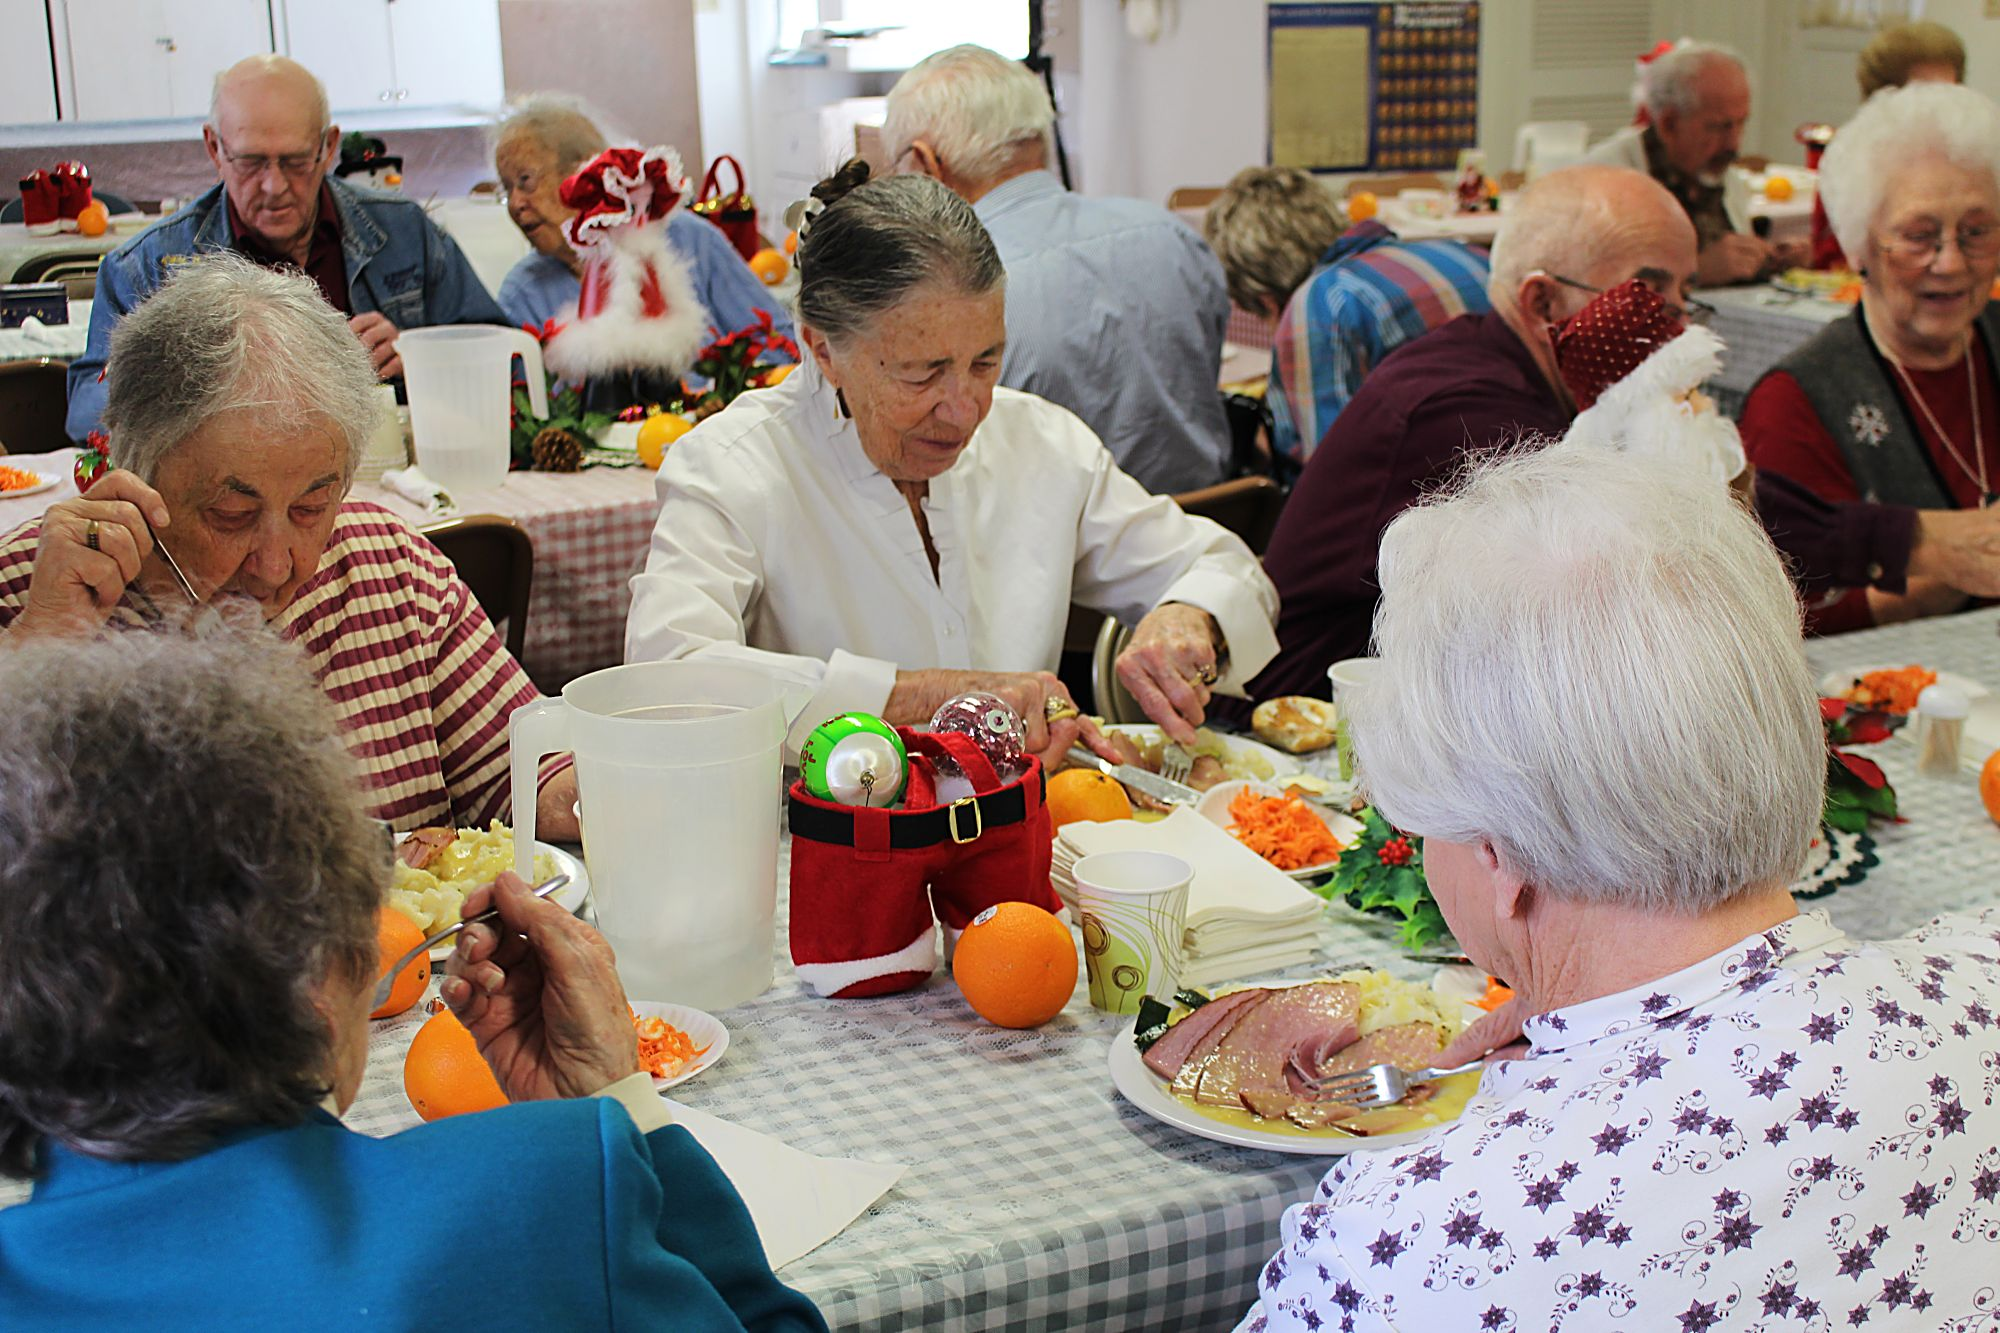 Park City senior citizens to elected officials: 'Do something for us'